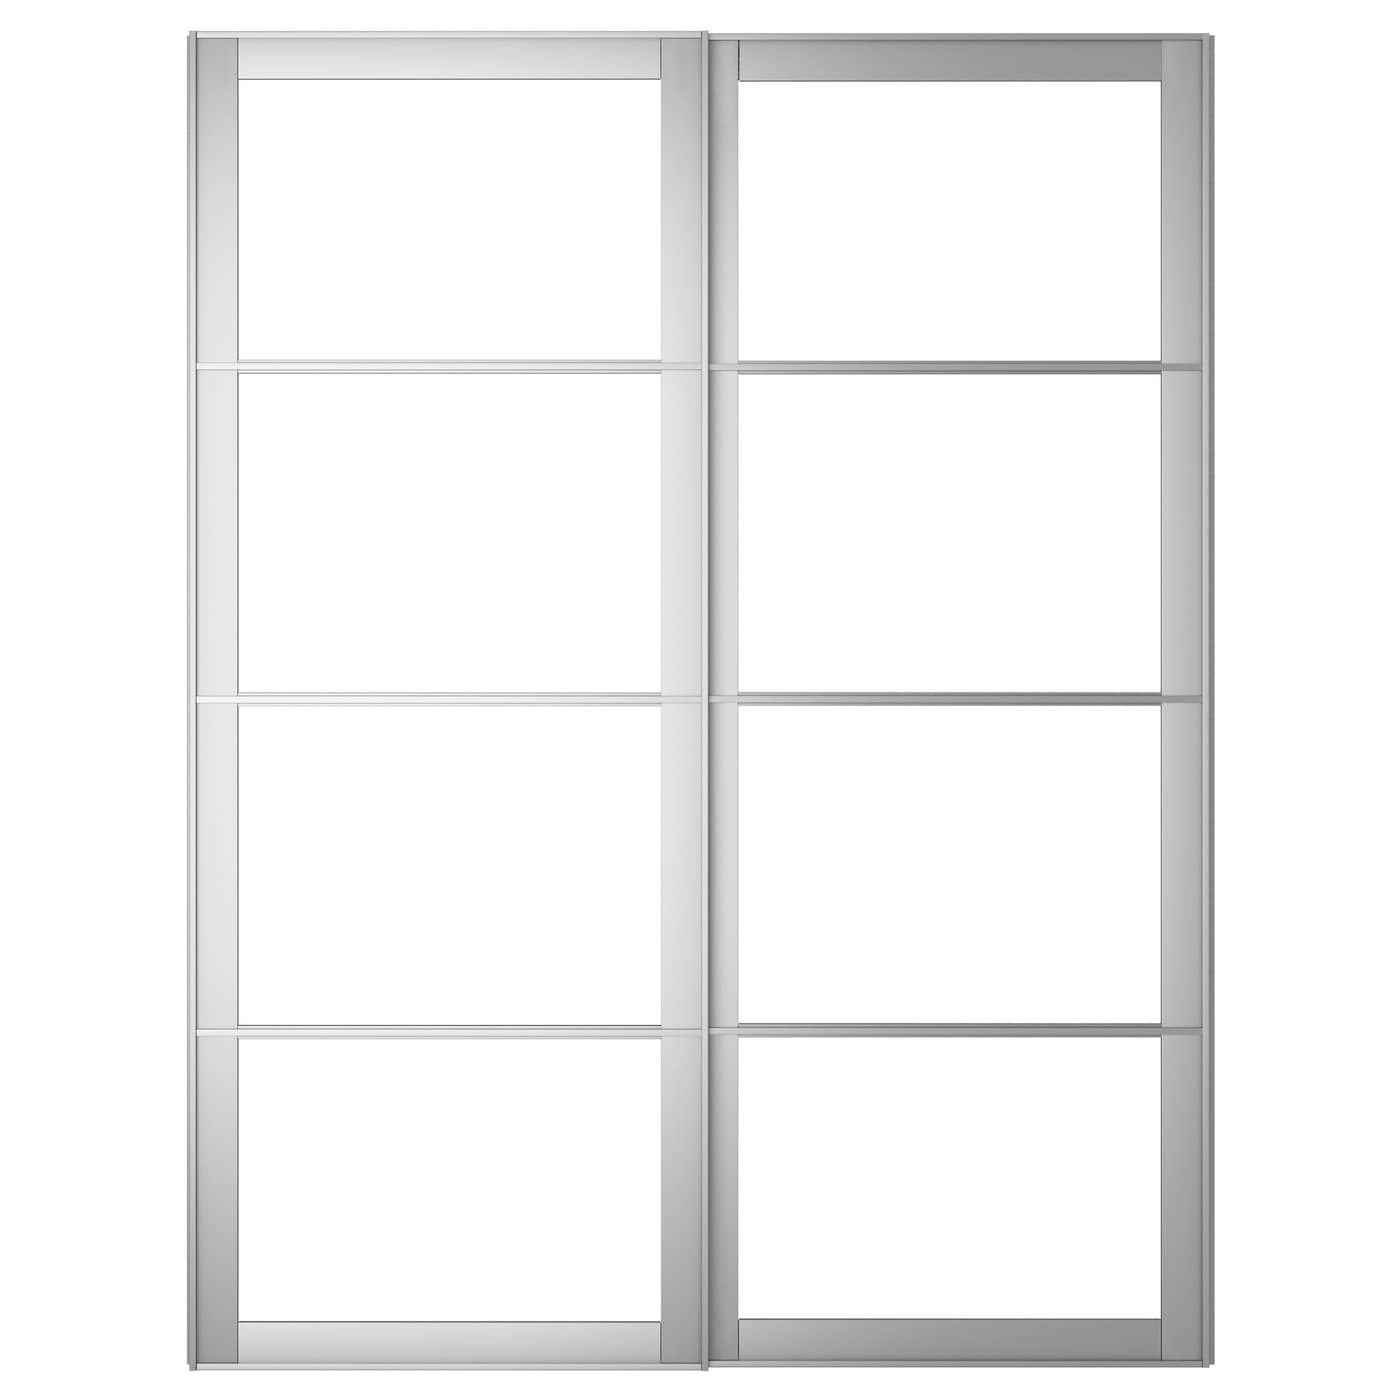 Sliding wardrobe doors ikea for Glass door frame